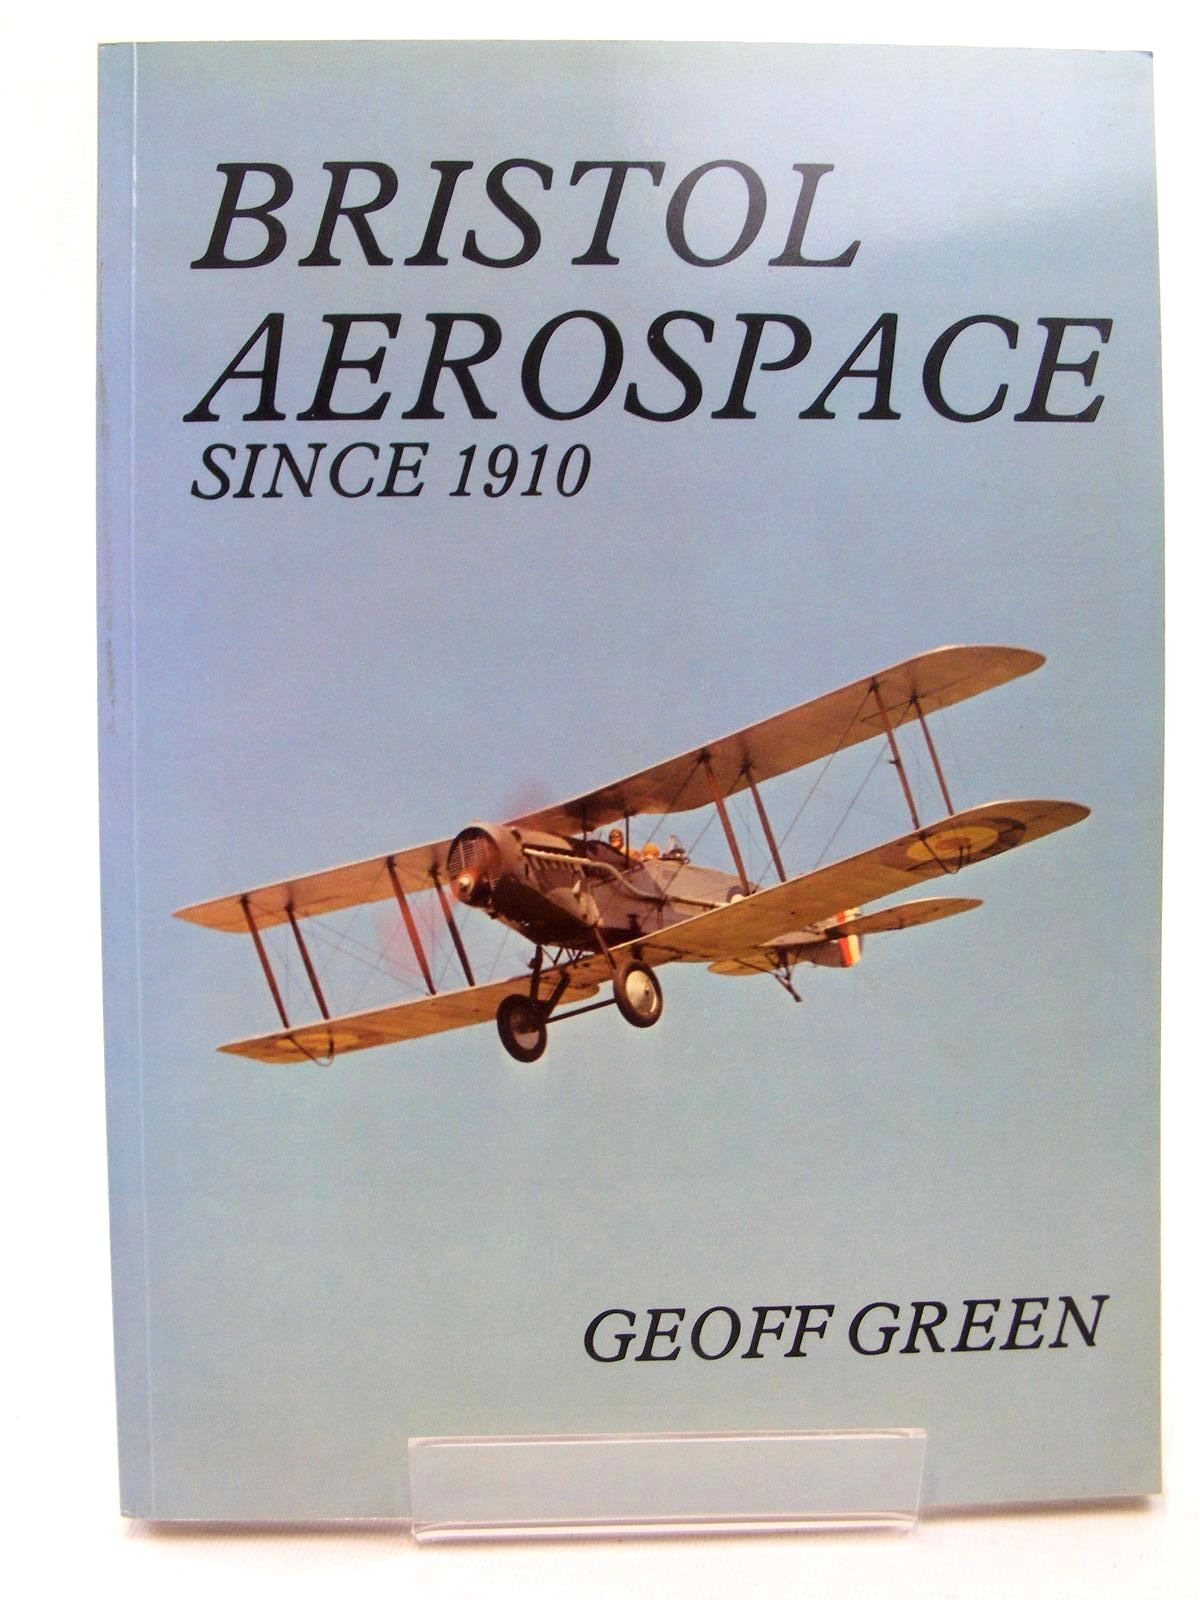 Photo of BRISTOL AEROSPACE SINCE 1910 written by Green, Geoff published by Geoff Green (STOCK CODE: 1610274)  for sale by Stella & Rose's Books